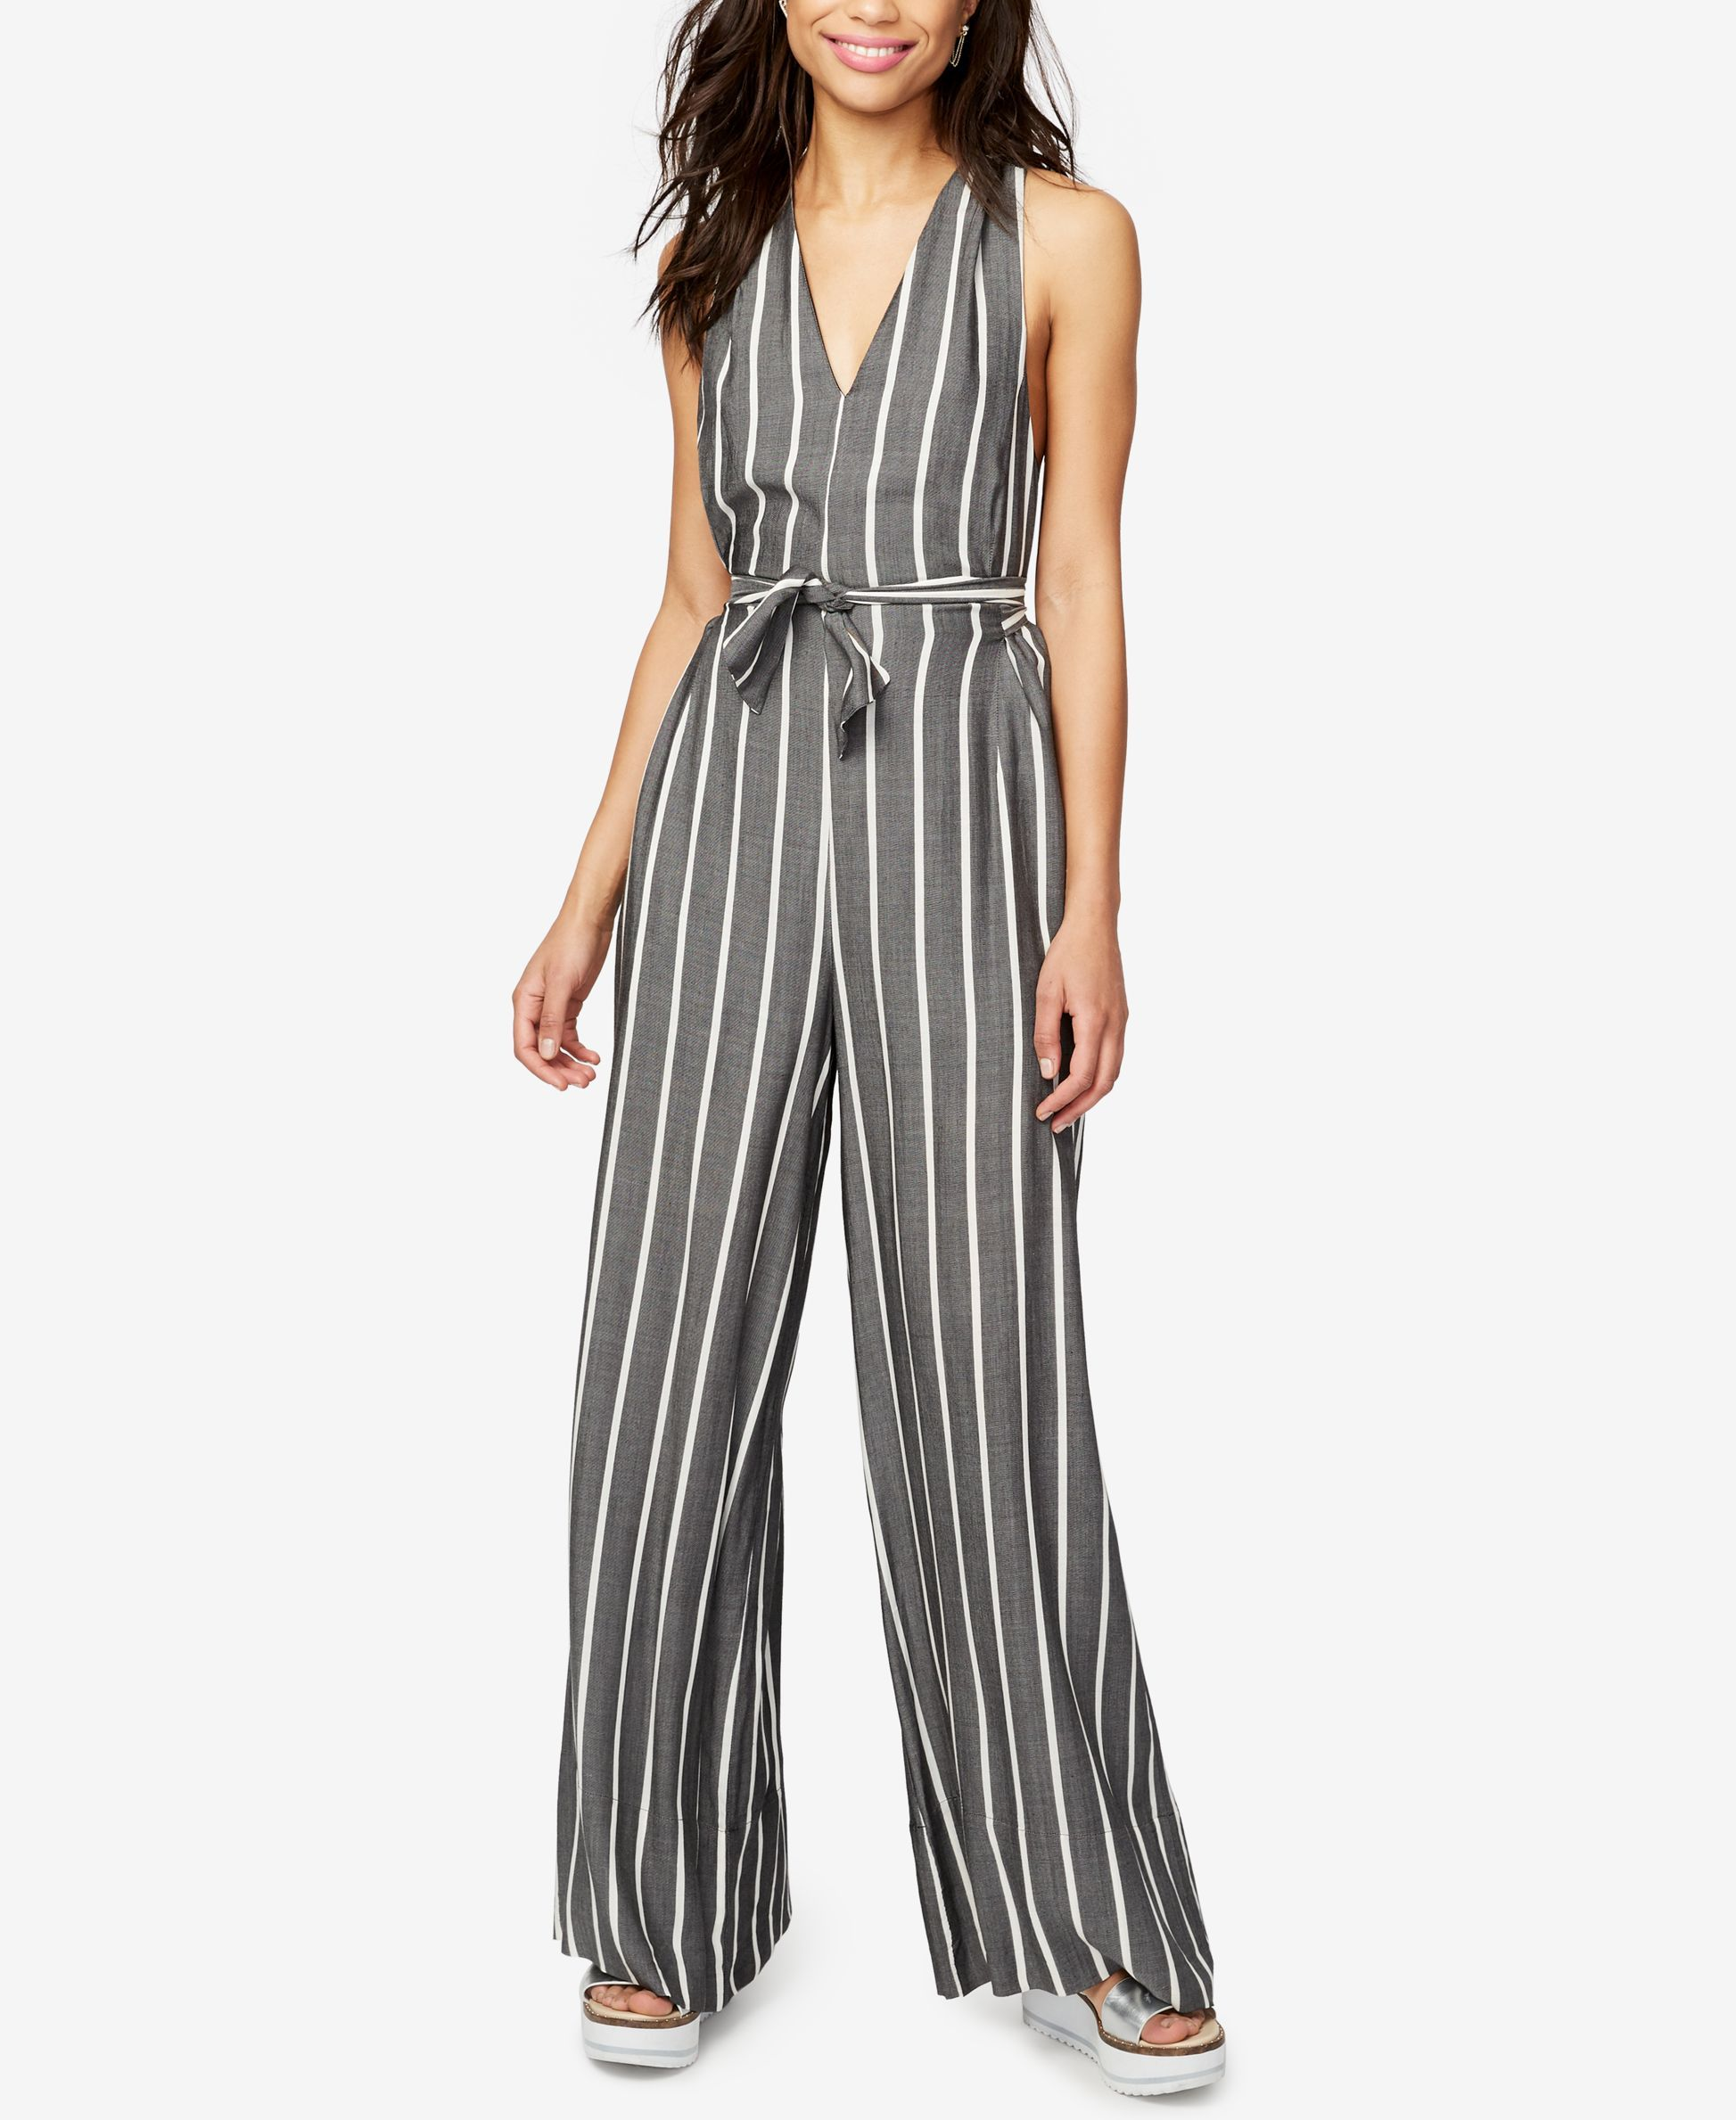 8b07313466fb Rachel Rachel Roy Striped Jumpsuit